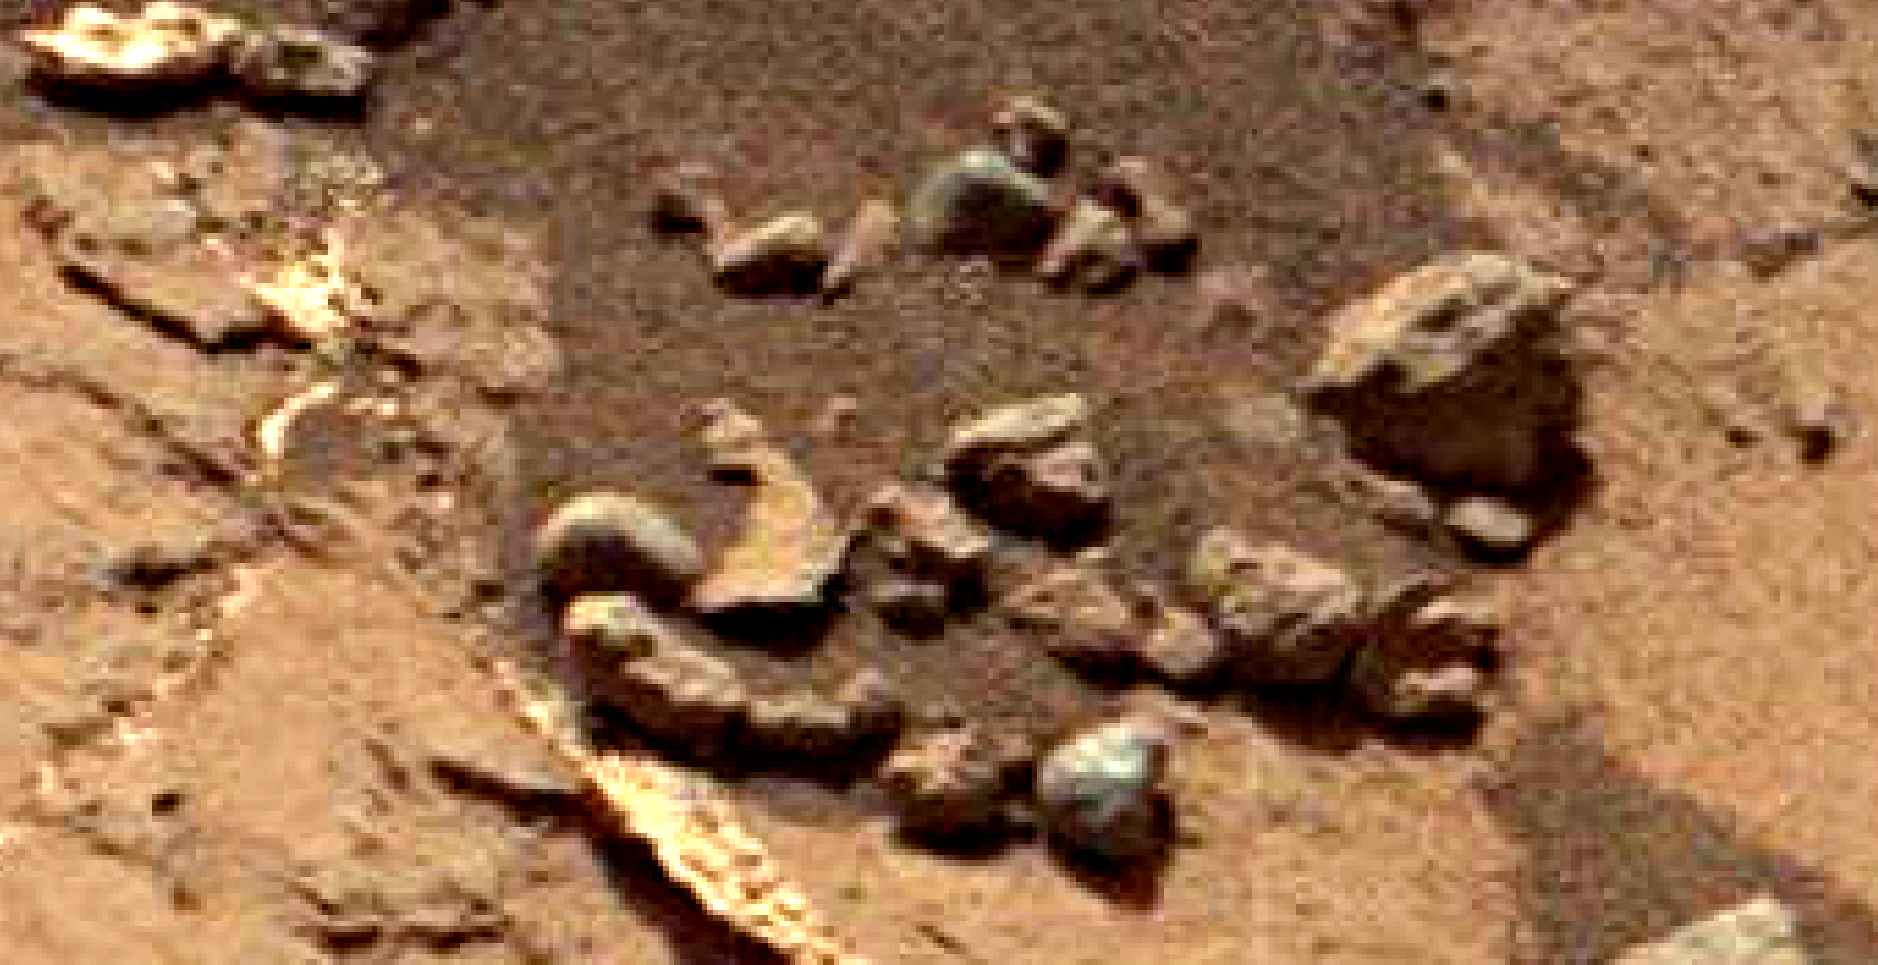 mars-sol-1456-anomaly-artifacts-5-was-life-on-mars